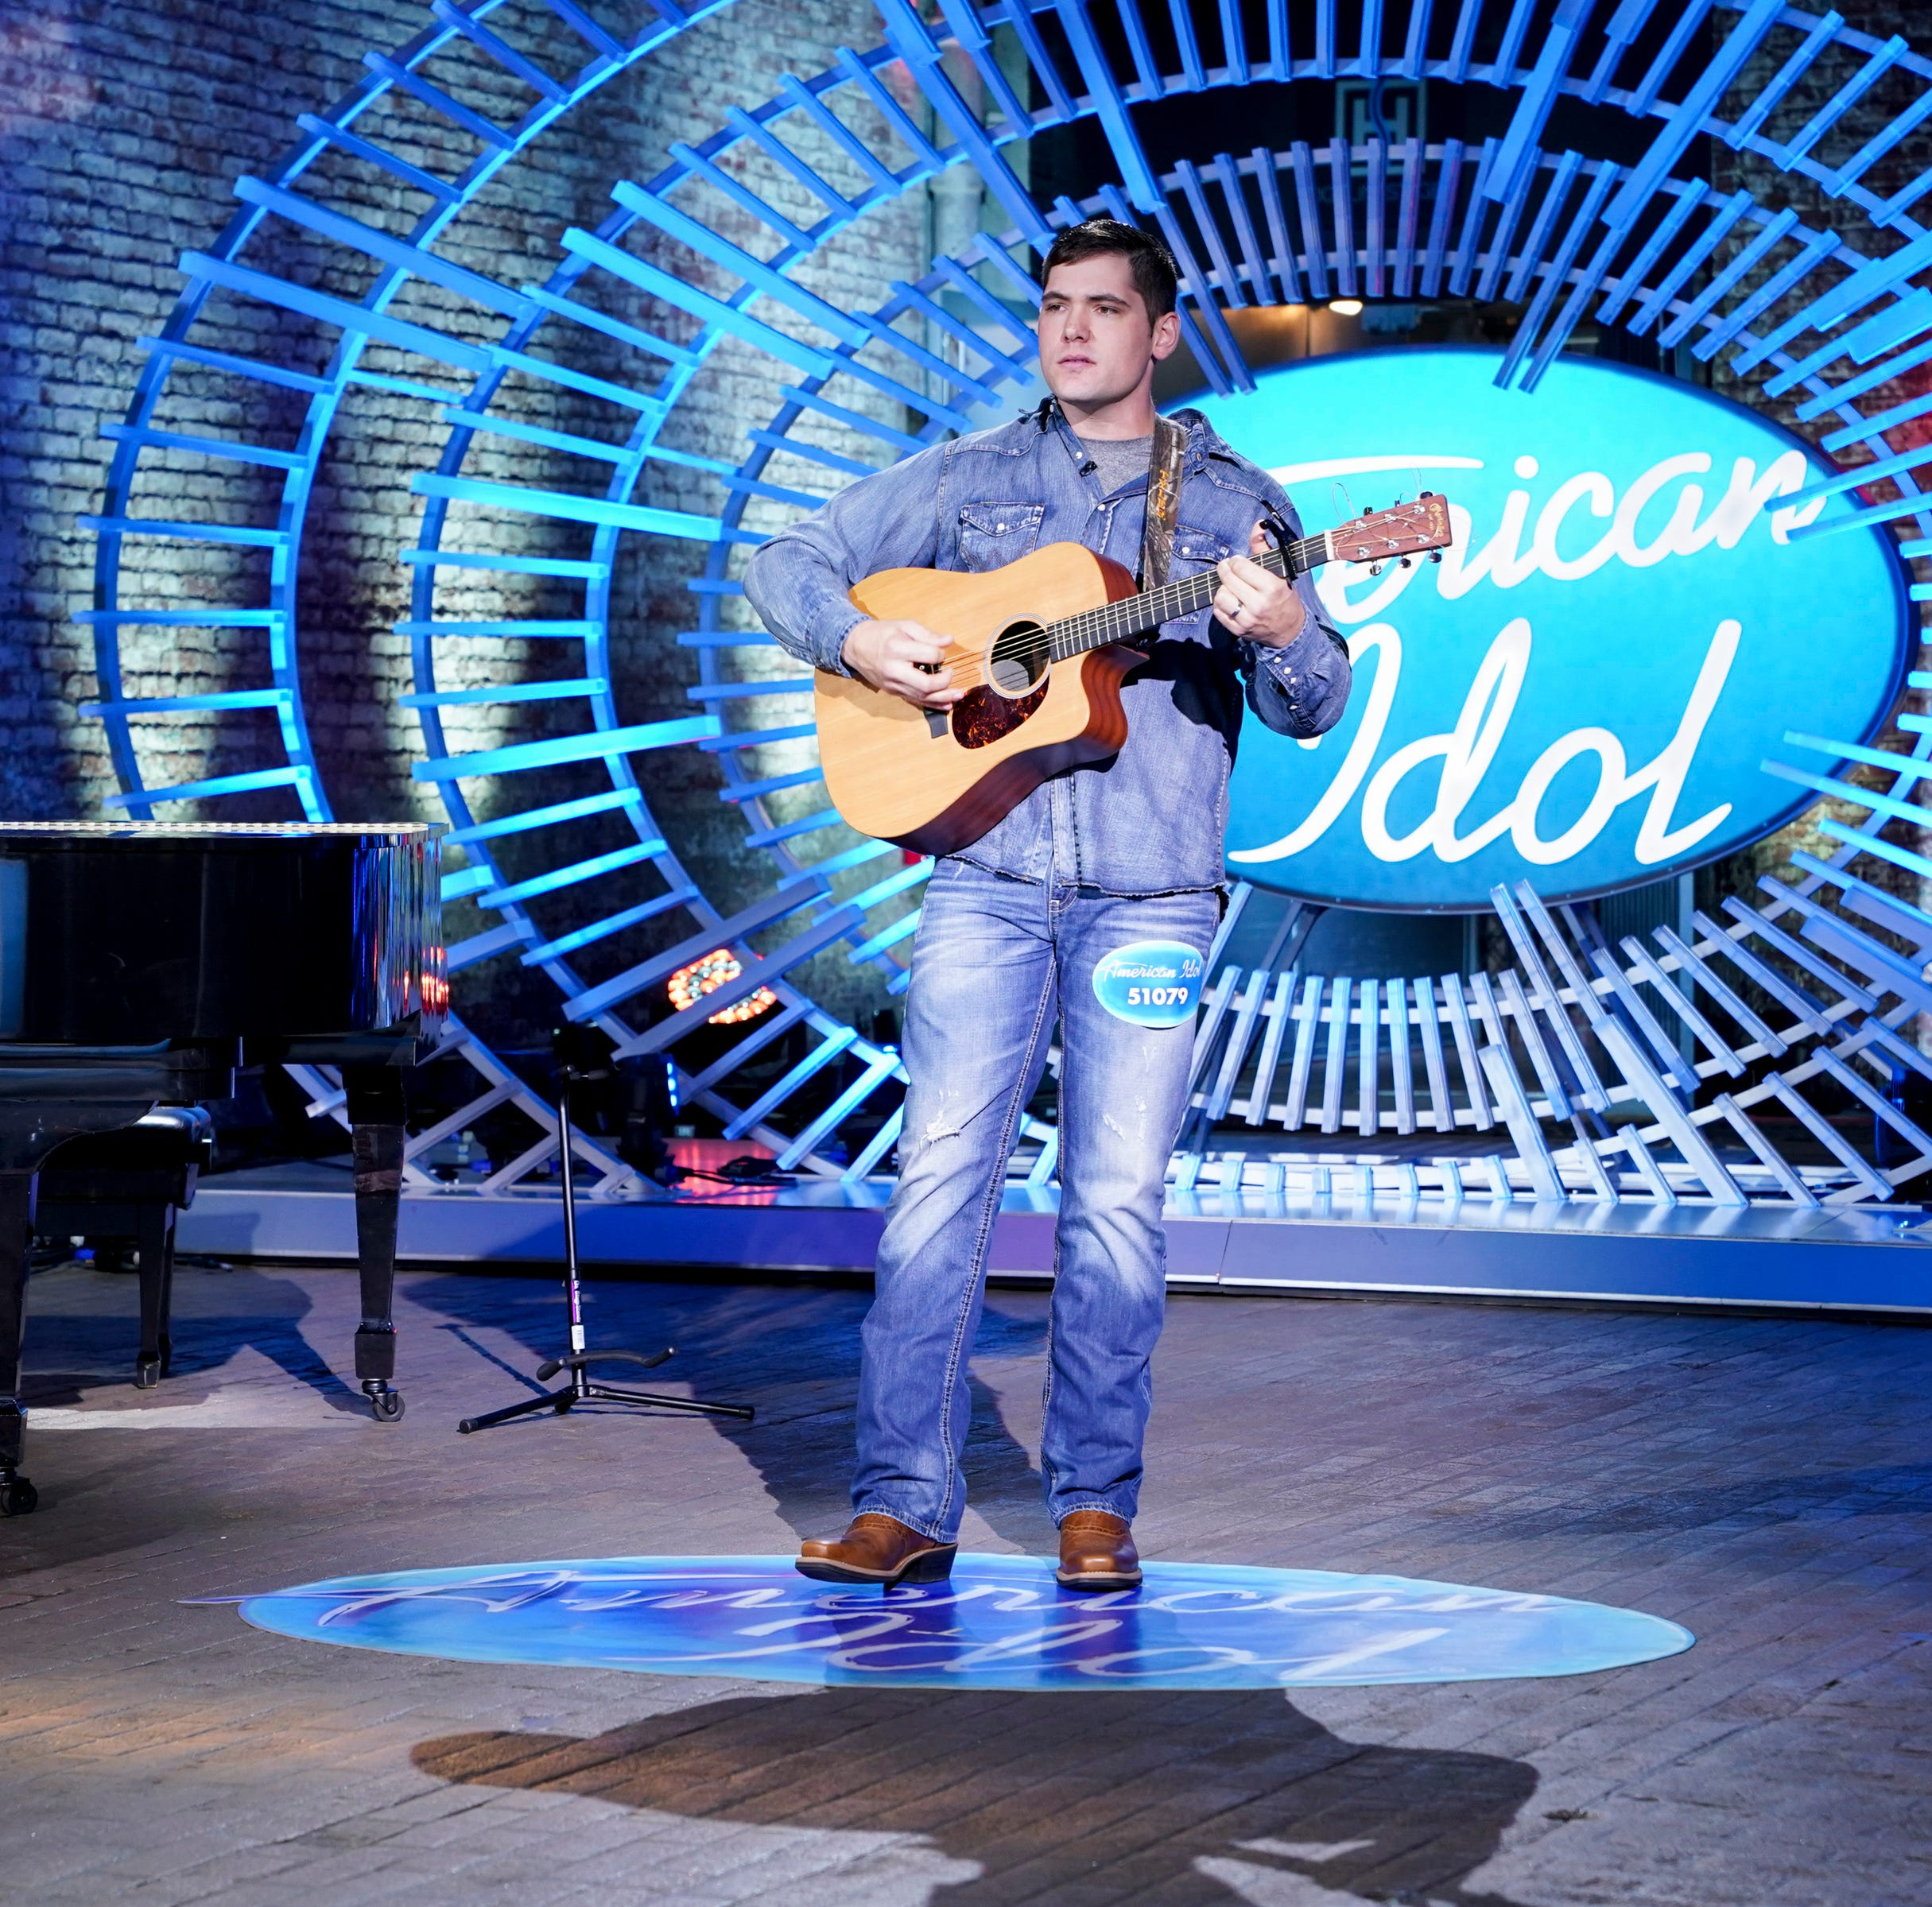 Local contestant earns 'golden ticket' on 'American Idol'